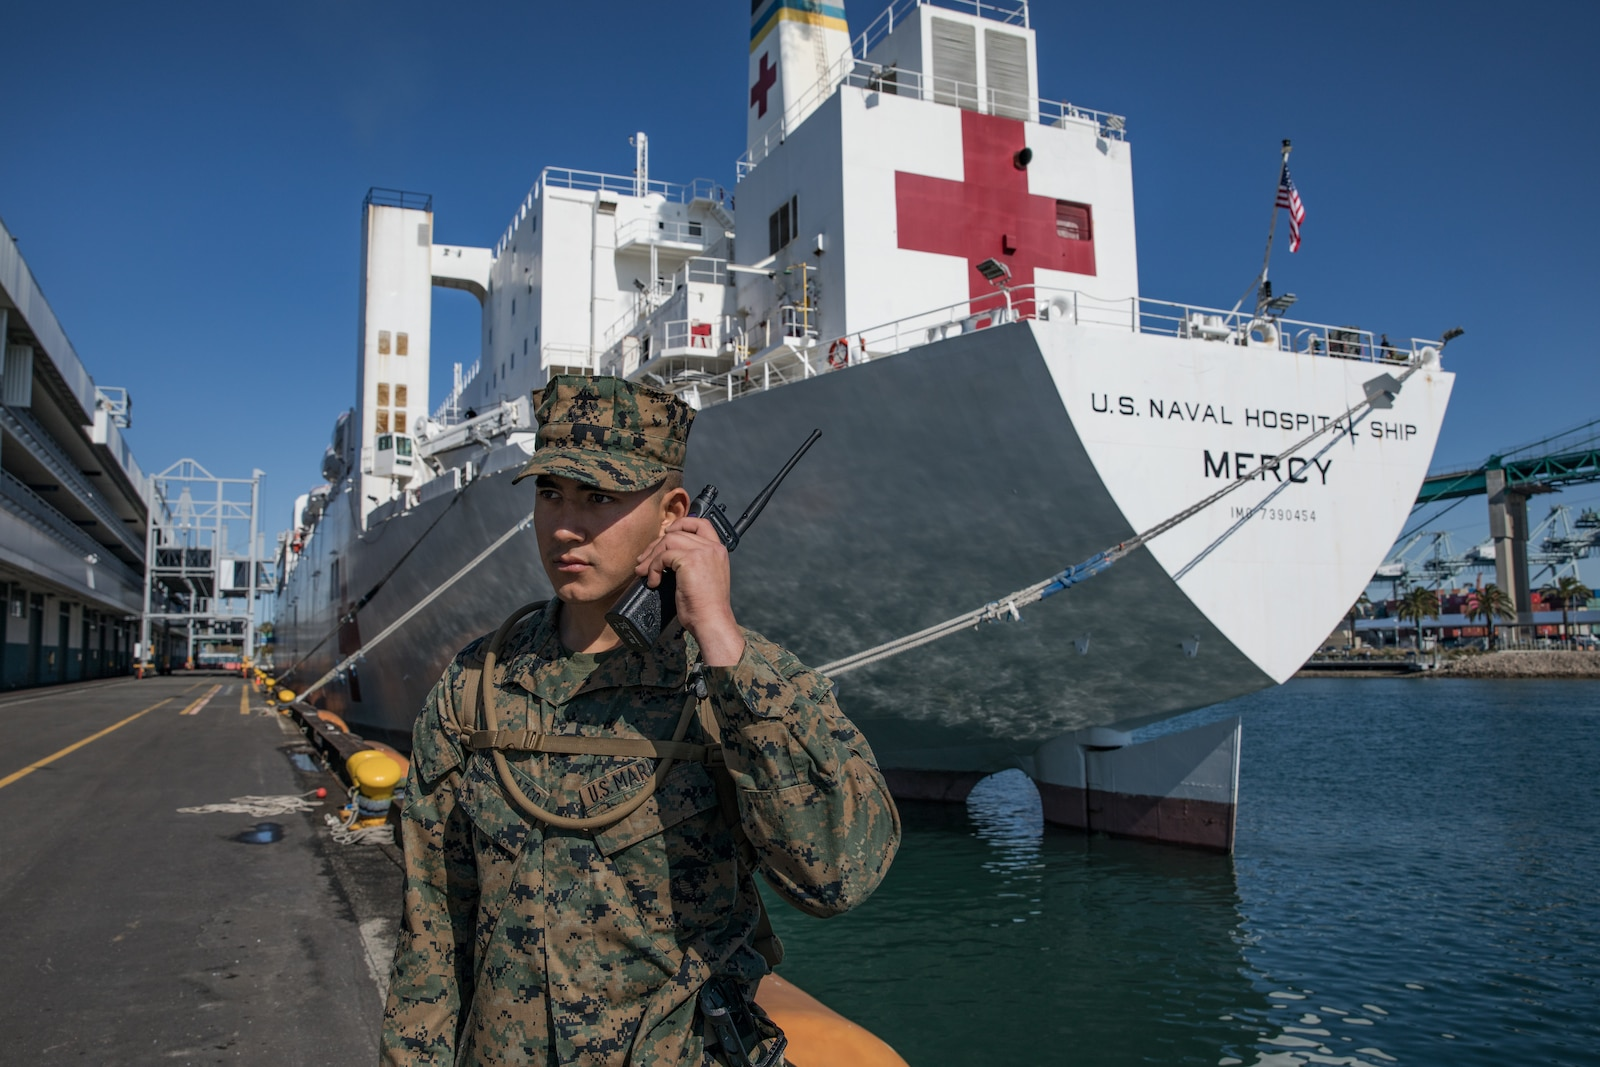 U.S. Marine Corps Pfc. Arnoldo RomeroVelazco, a rifleman with 1st  Battalion, 4th Marine Regiment, 1st Marine Division, posts security to secure the Military Sealift Command hospital ship USNS Mercy (T-AH 19) in Los Angeles, California, March 27.